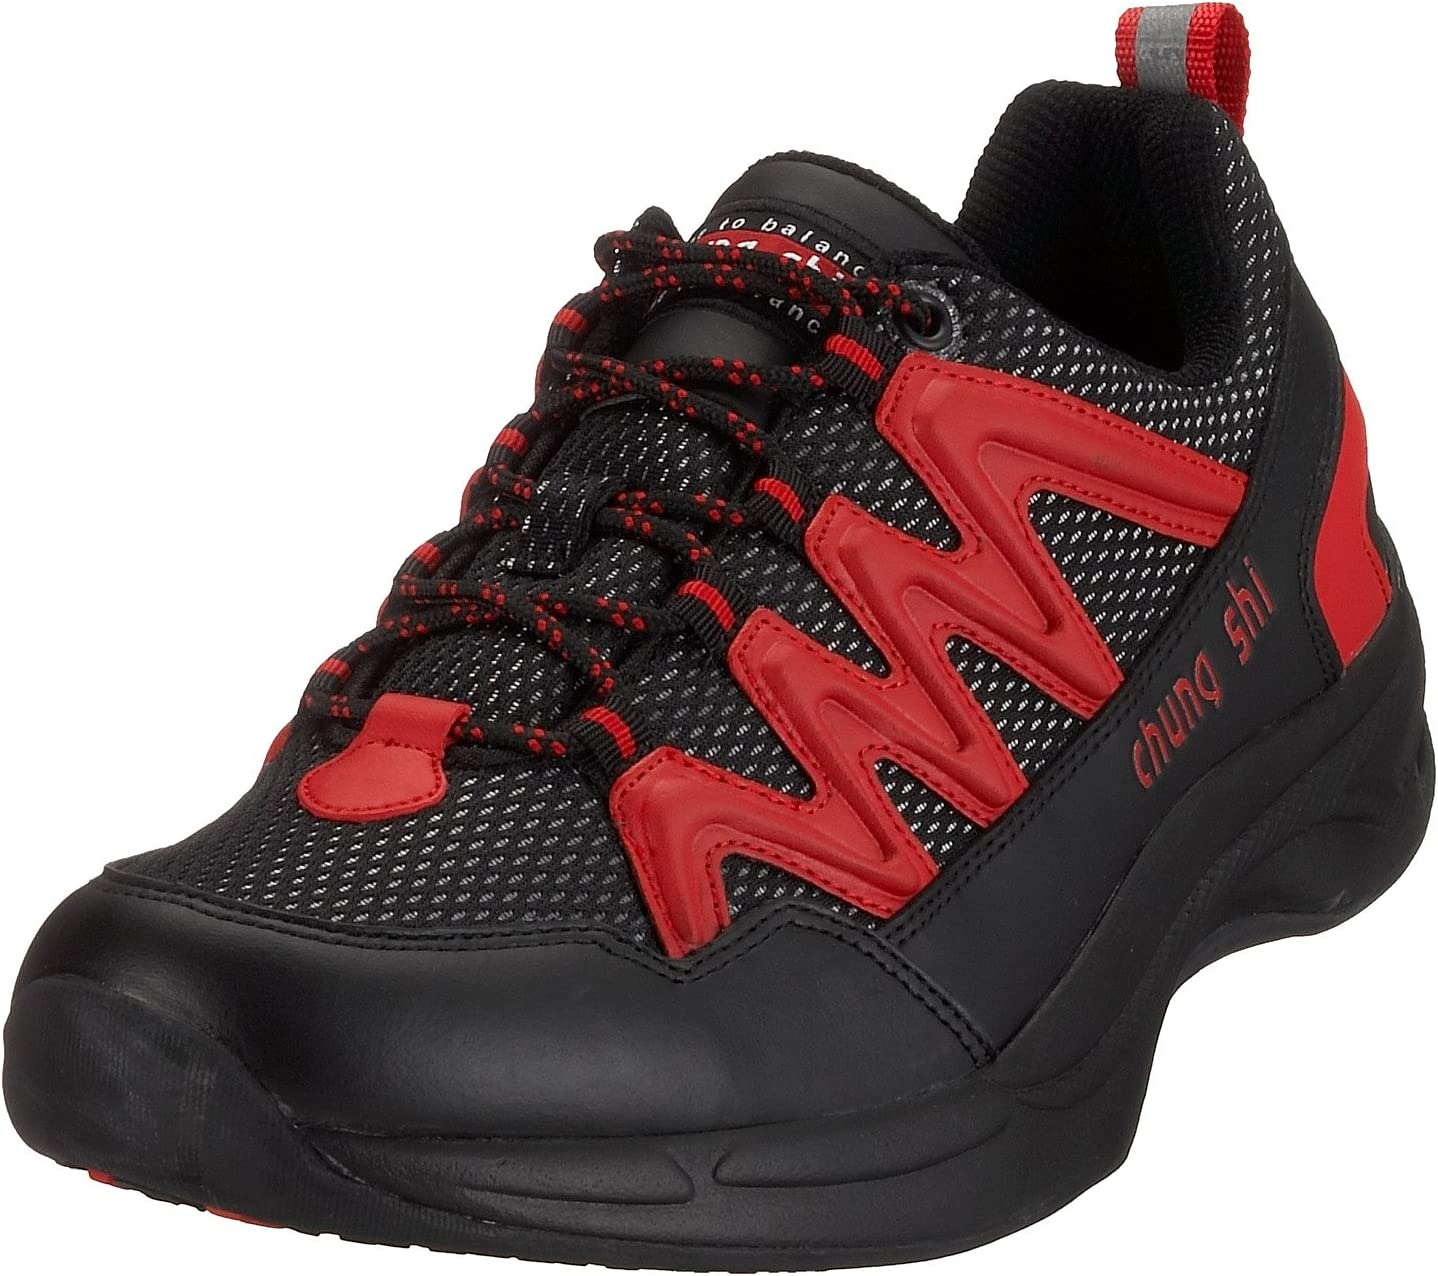 Chung Hiking Shoes For Men